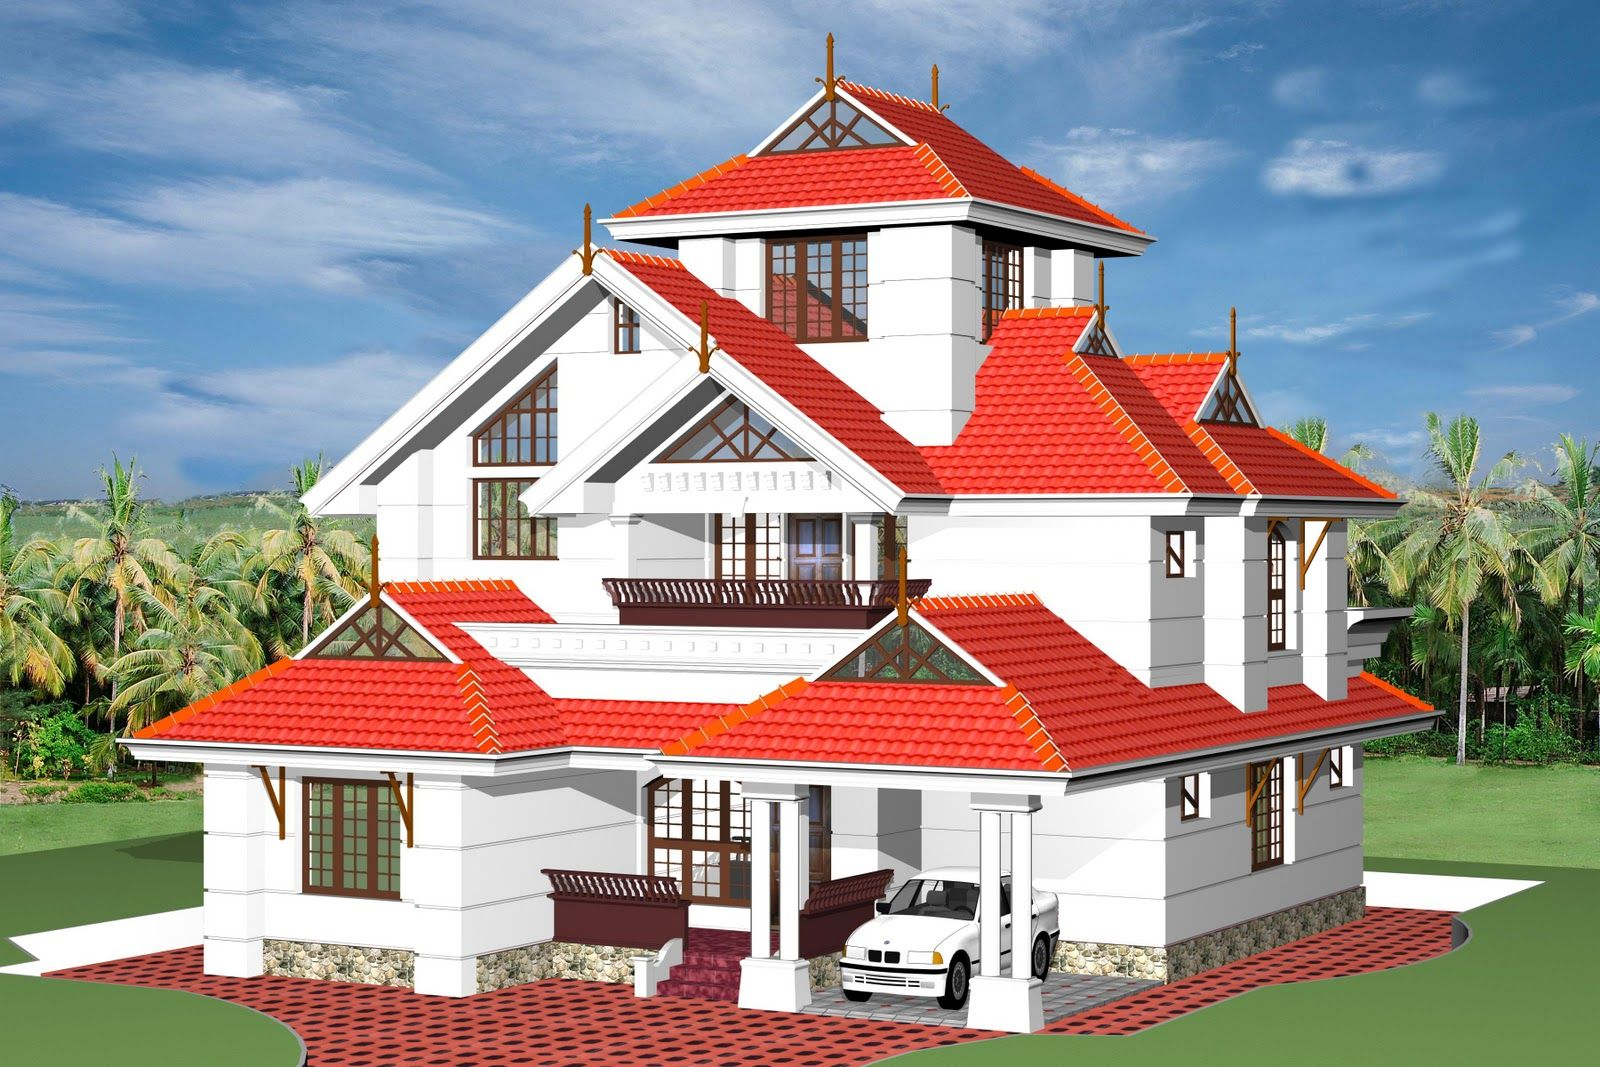 Fresh 3d views of kerala style home plansindian home design d house malvernweather Image collections